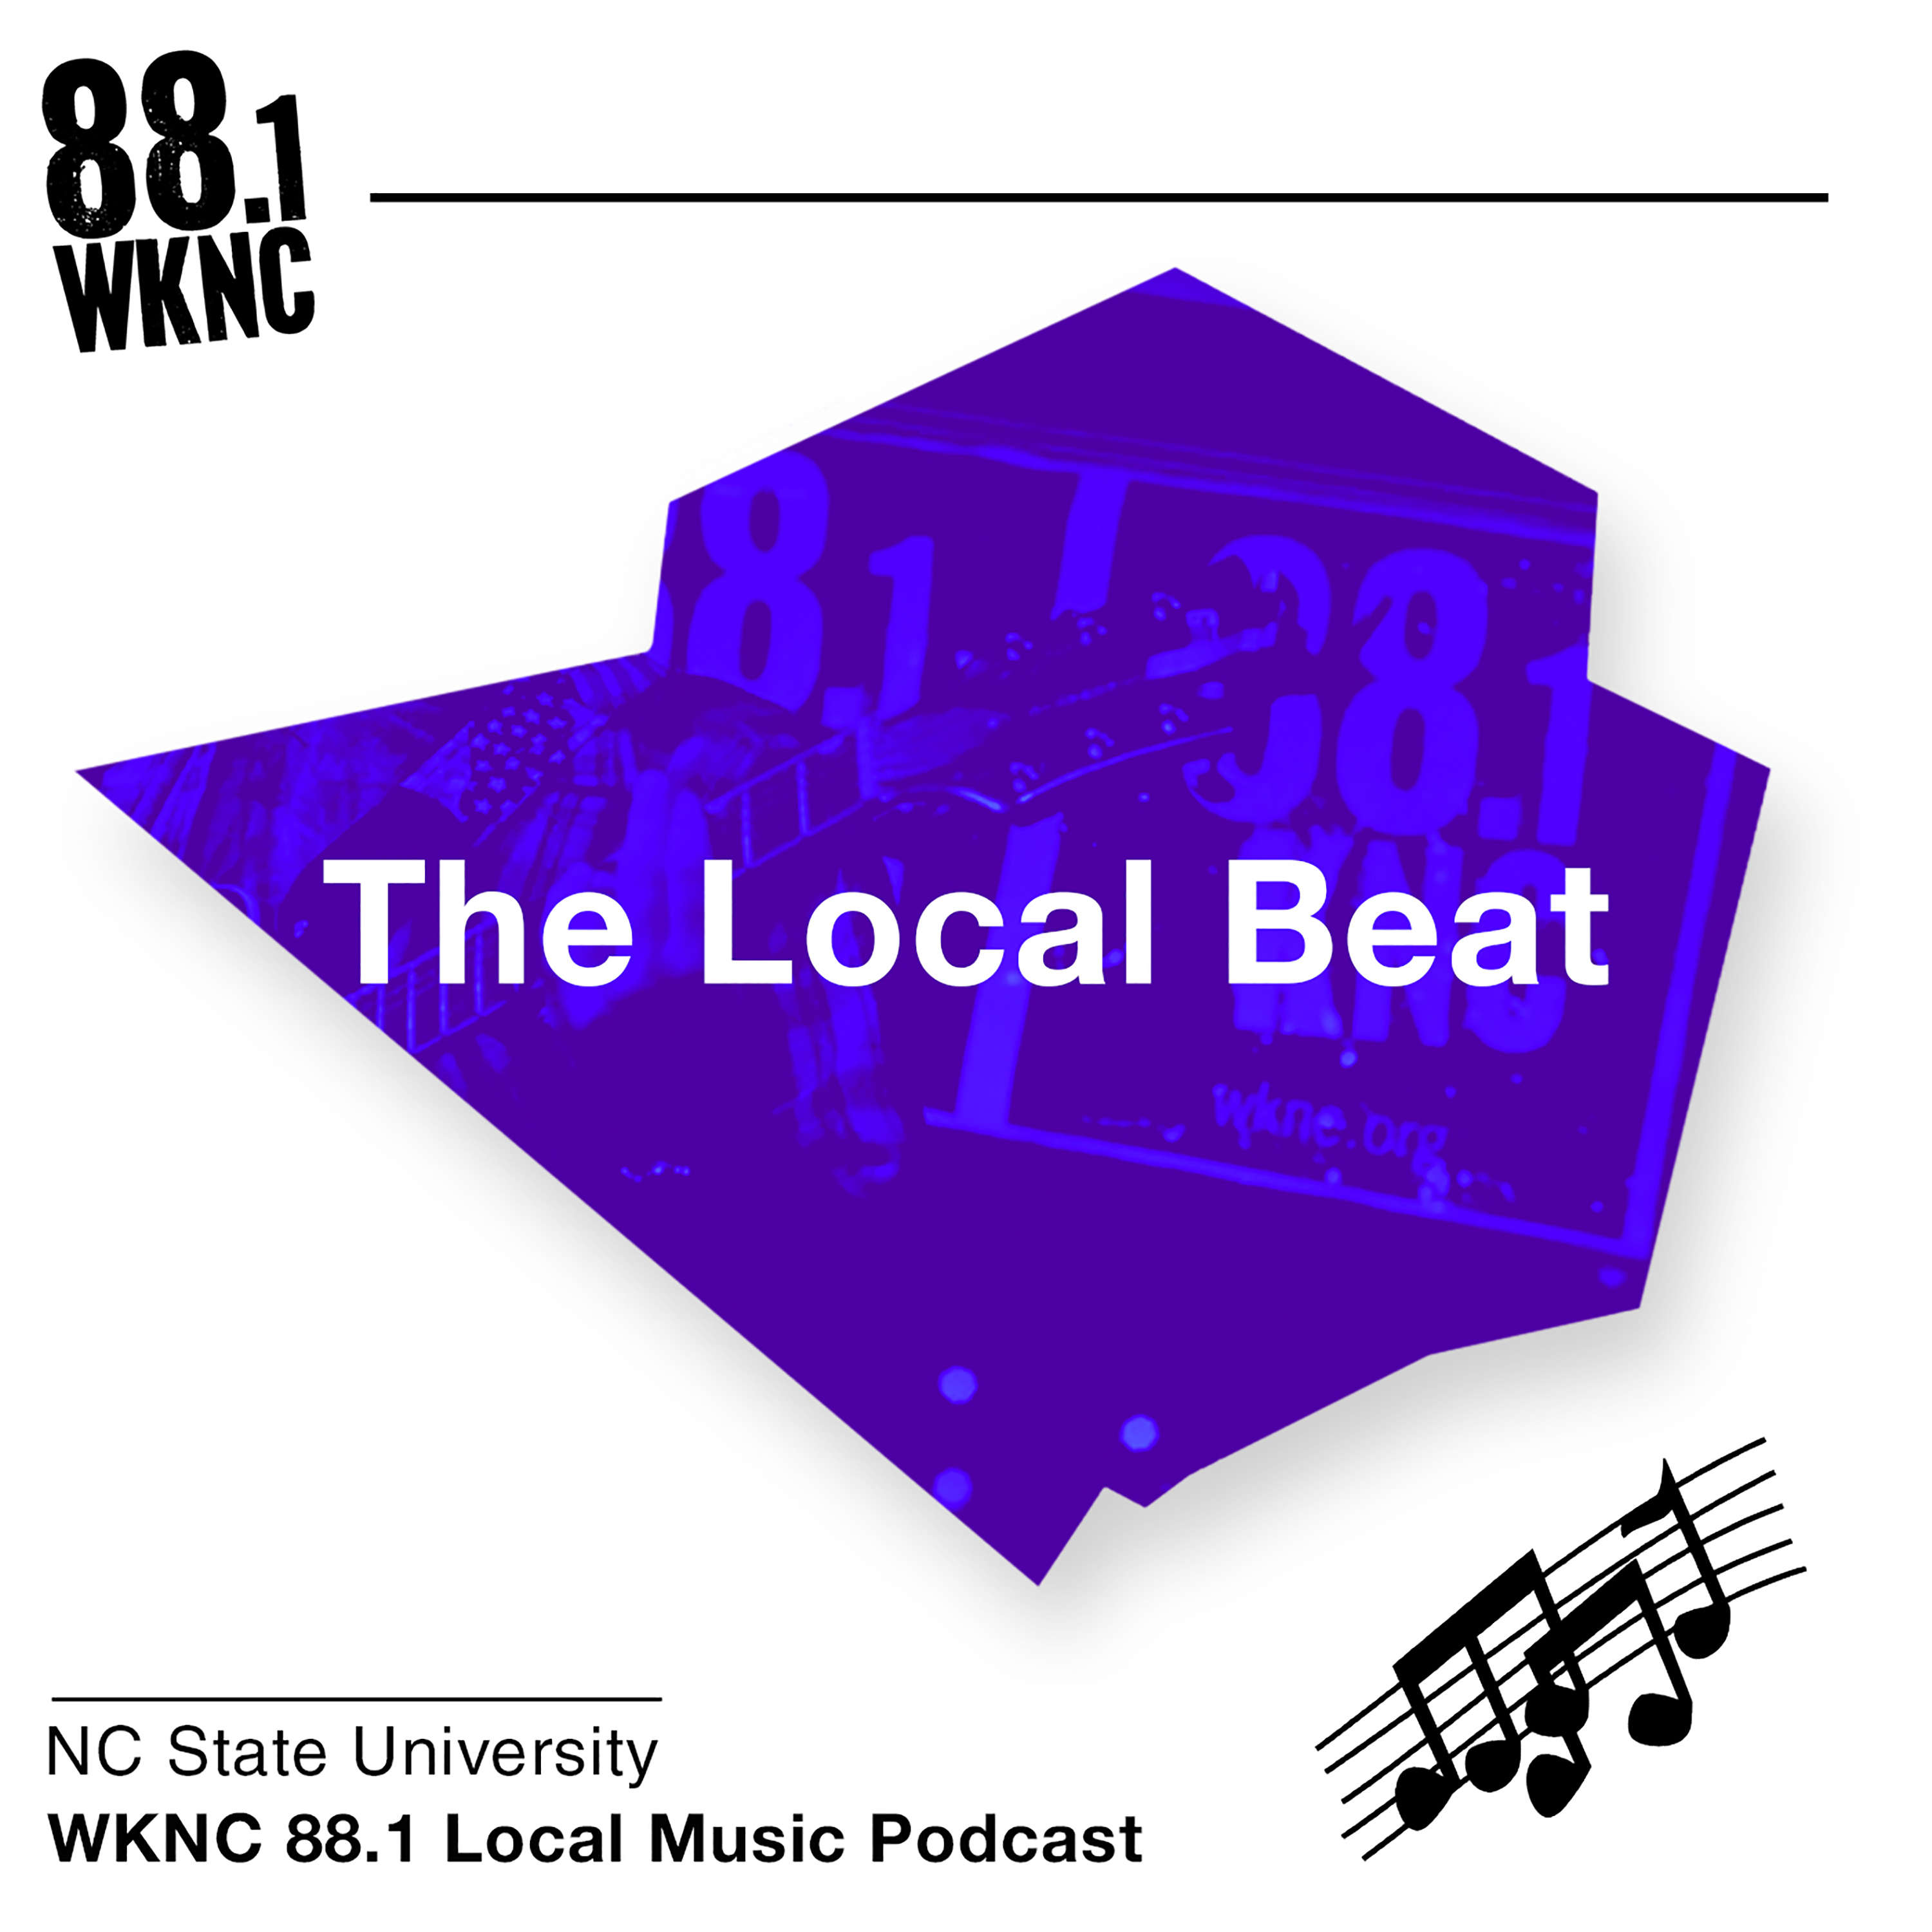 The Local Beat: YEA(H)